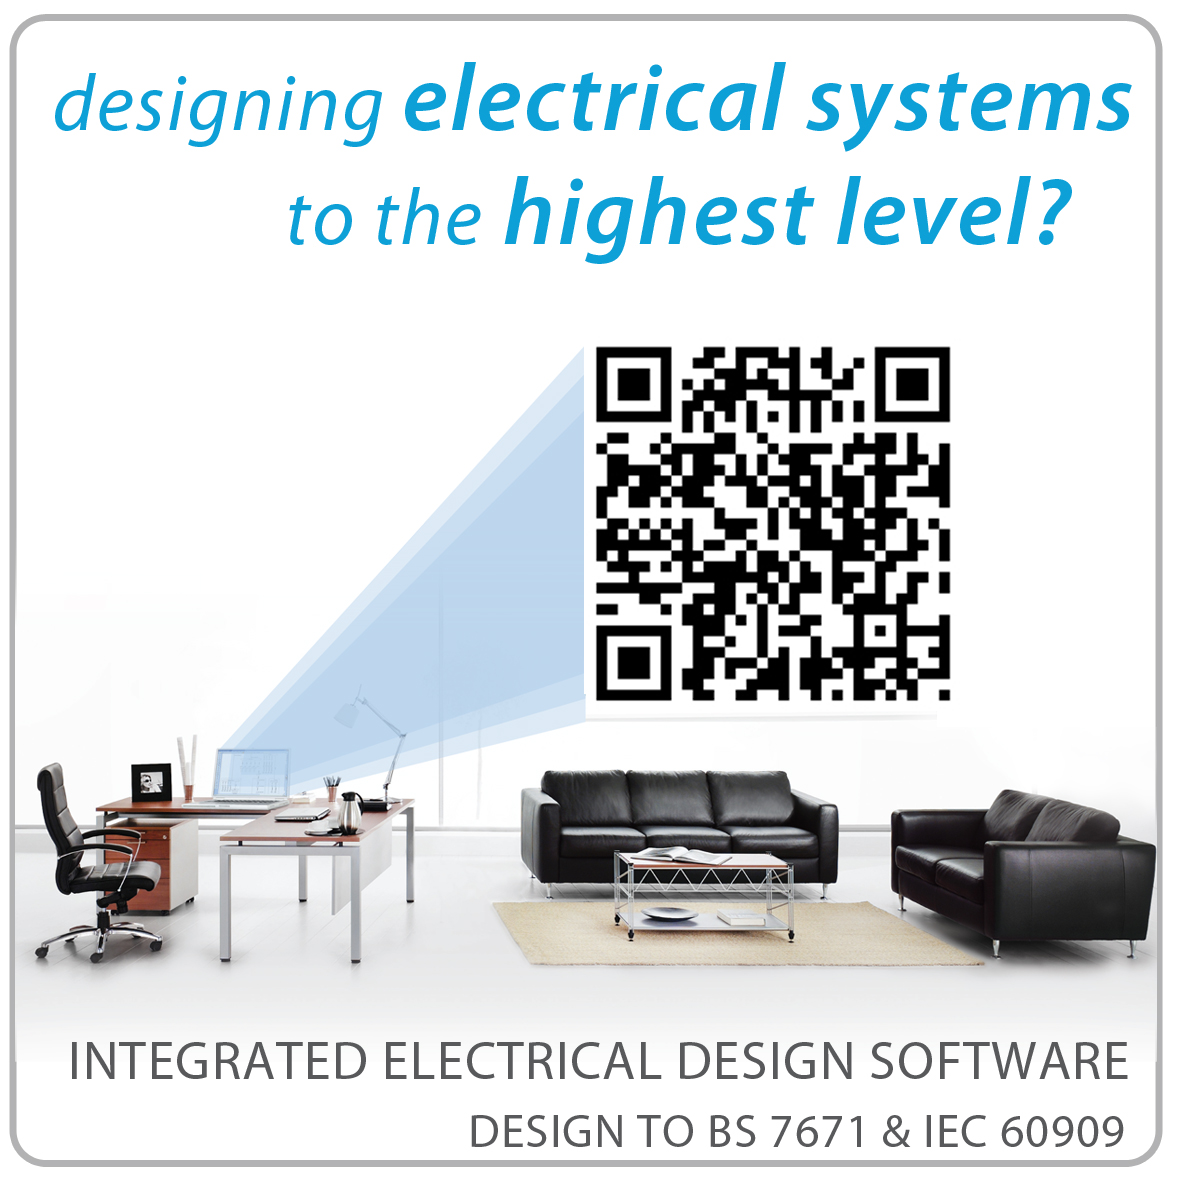 The complete solution for electrical design